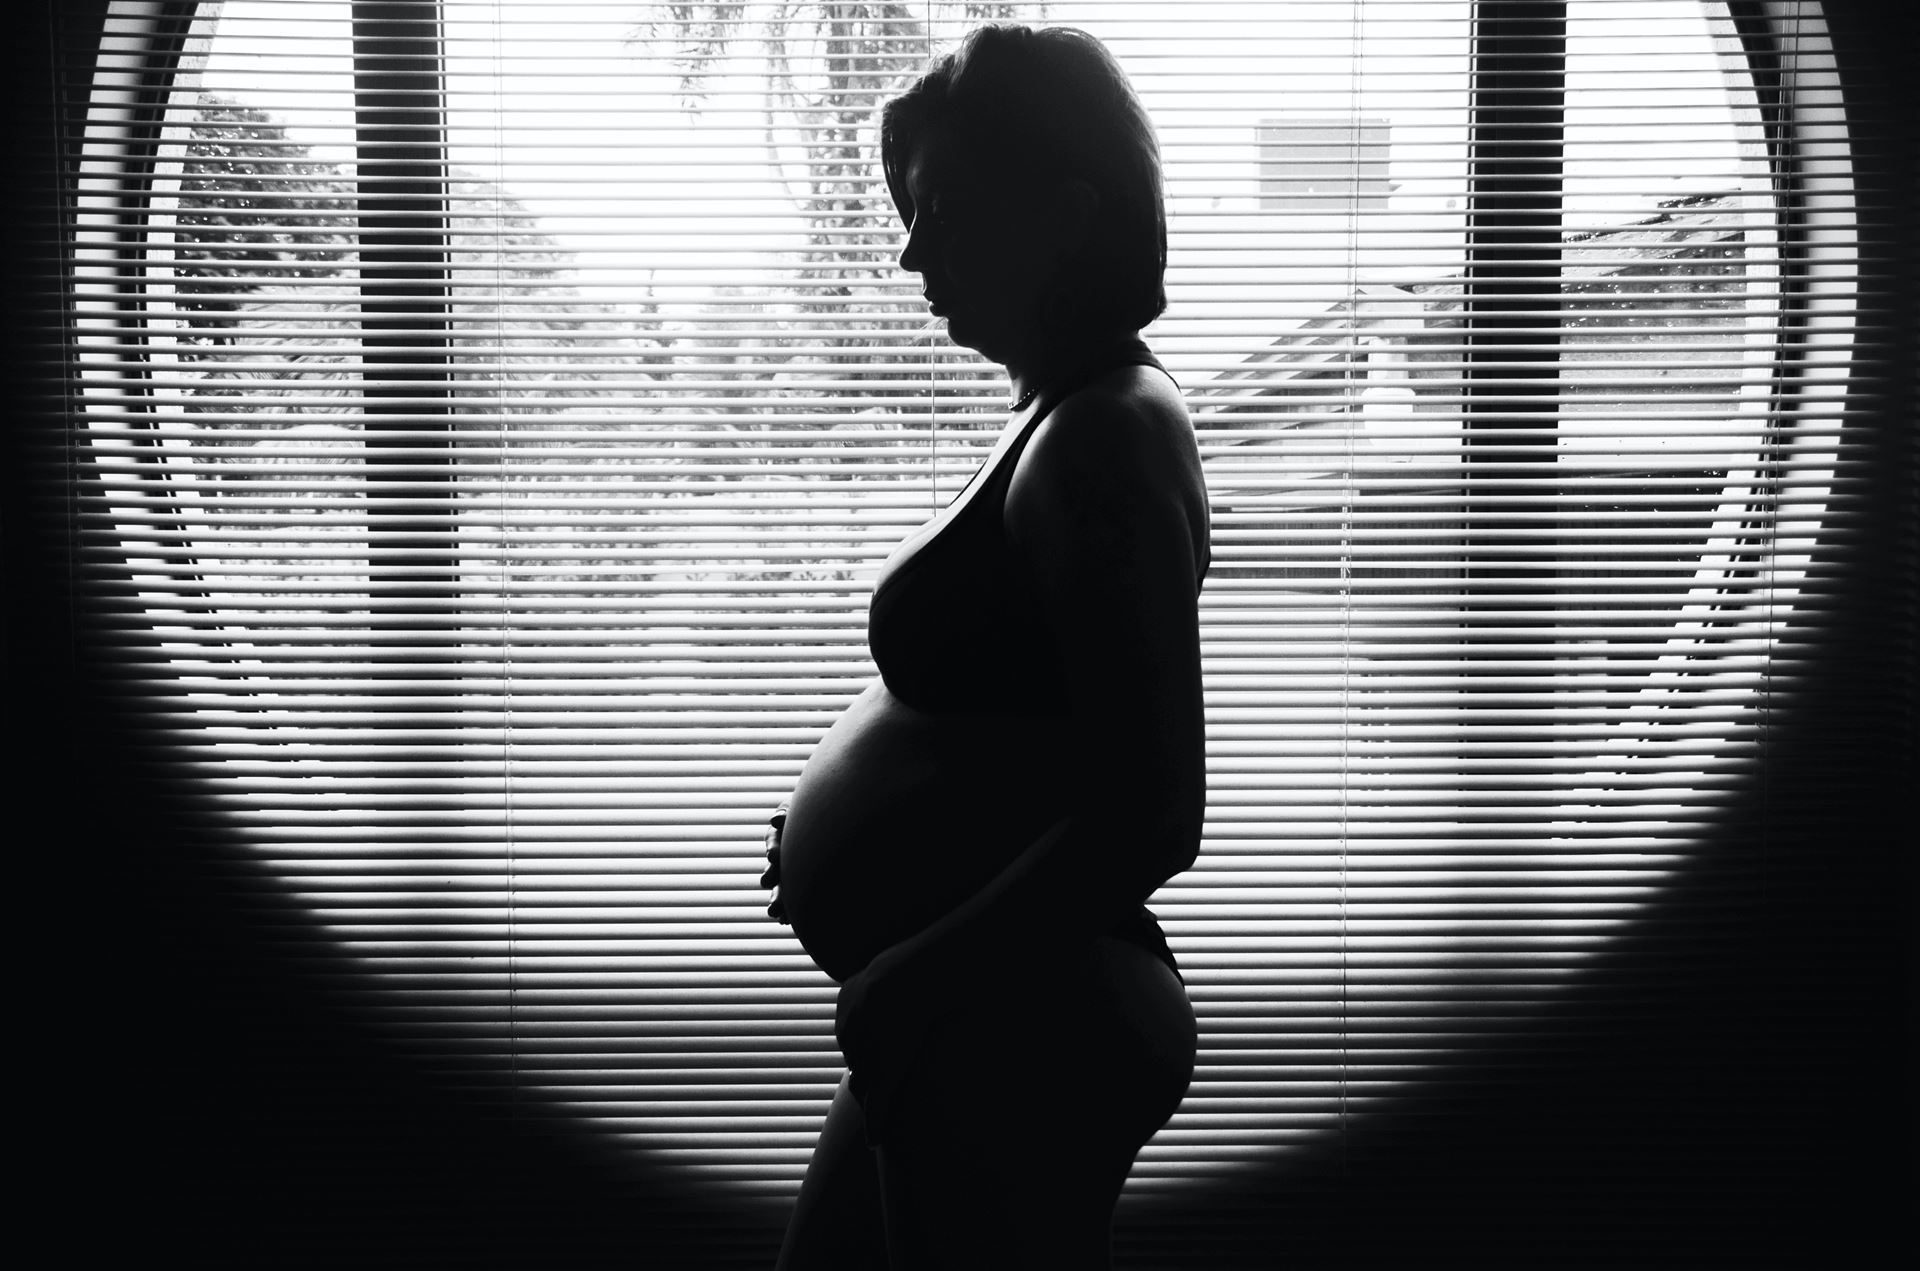 Black and white image of a pregnant individual's silhouette in front of a window with venetian blinds. Photo by Camila Cordeiro on Unsplash